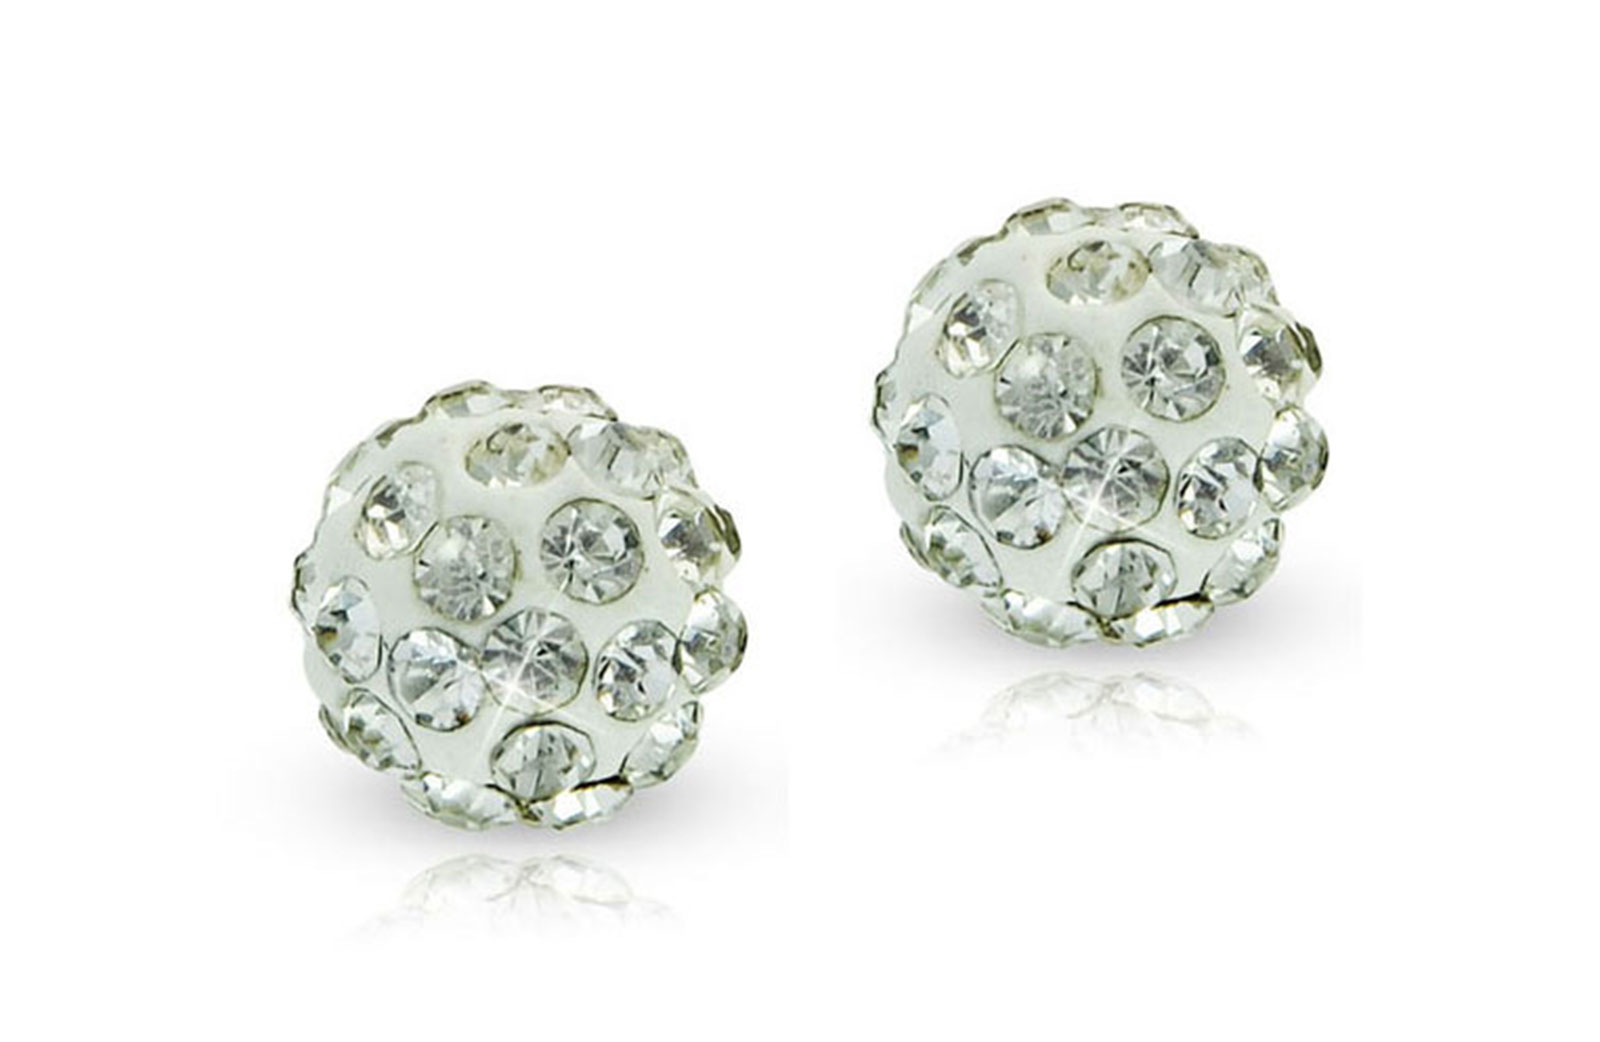 Vera Perla 18k Solid Gold 6mm Simple Crystal Ball Earrings